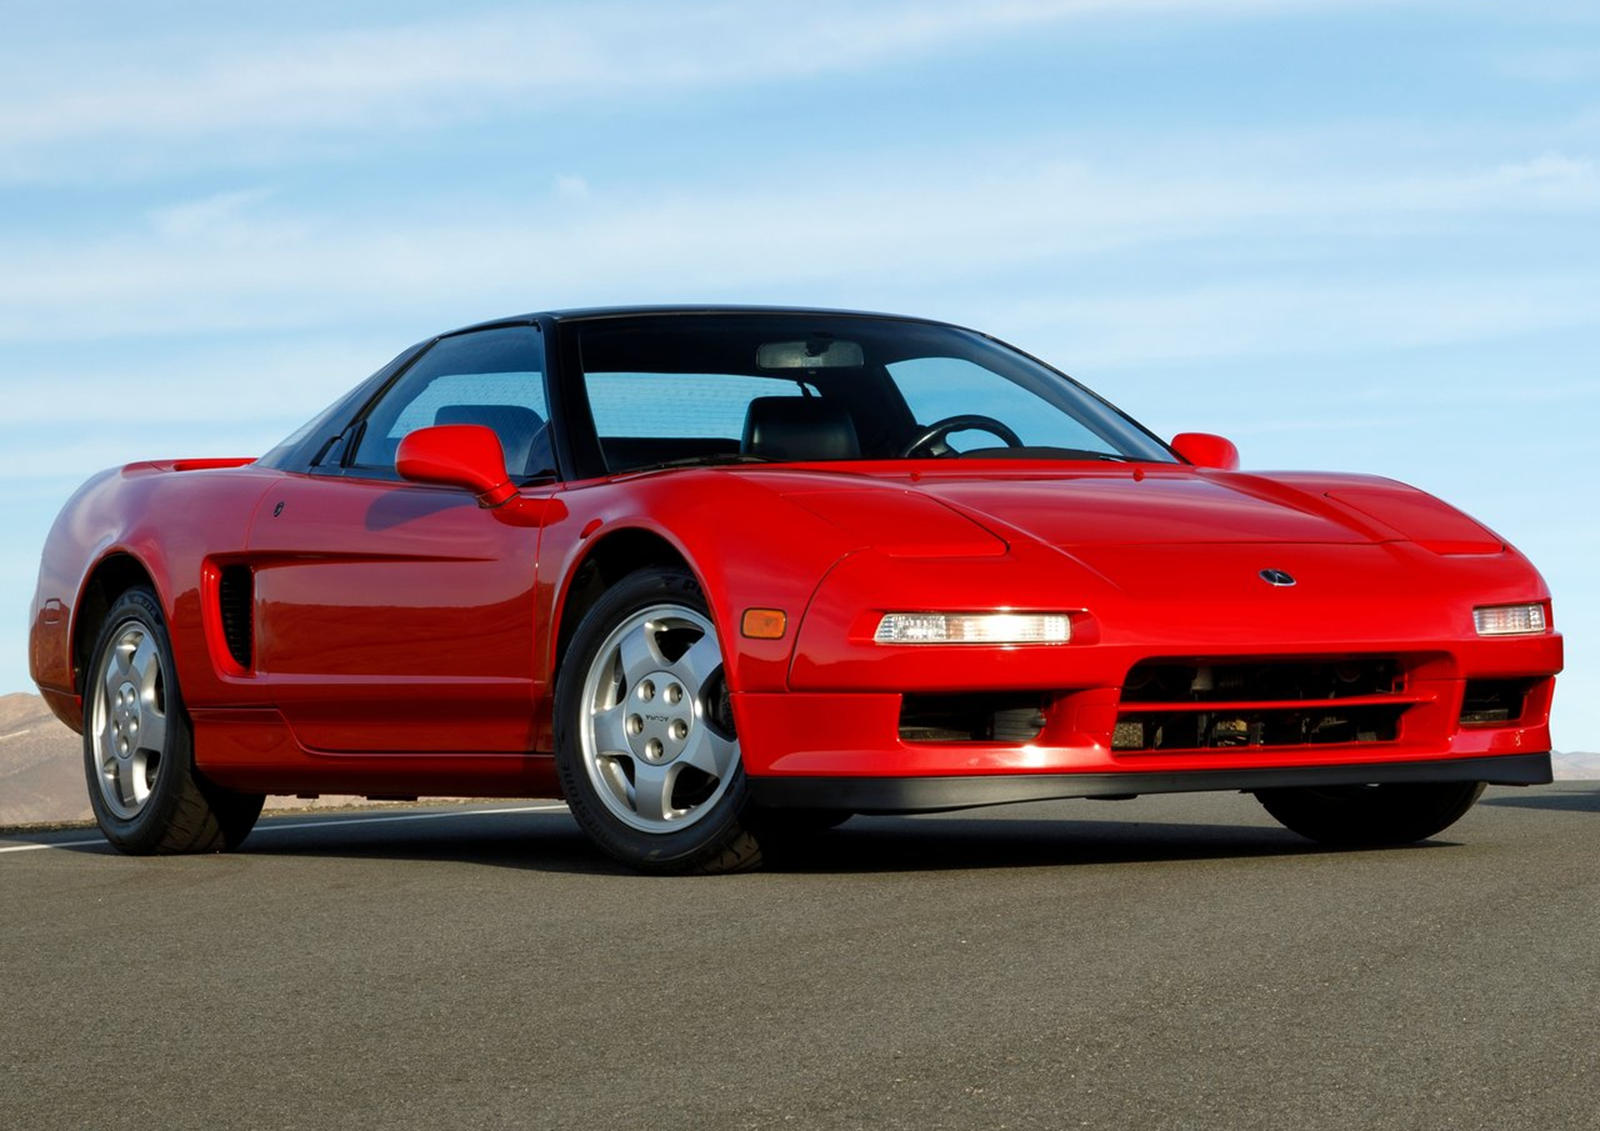 Japanese Classic Sports Cars Are Today's Hottest ...